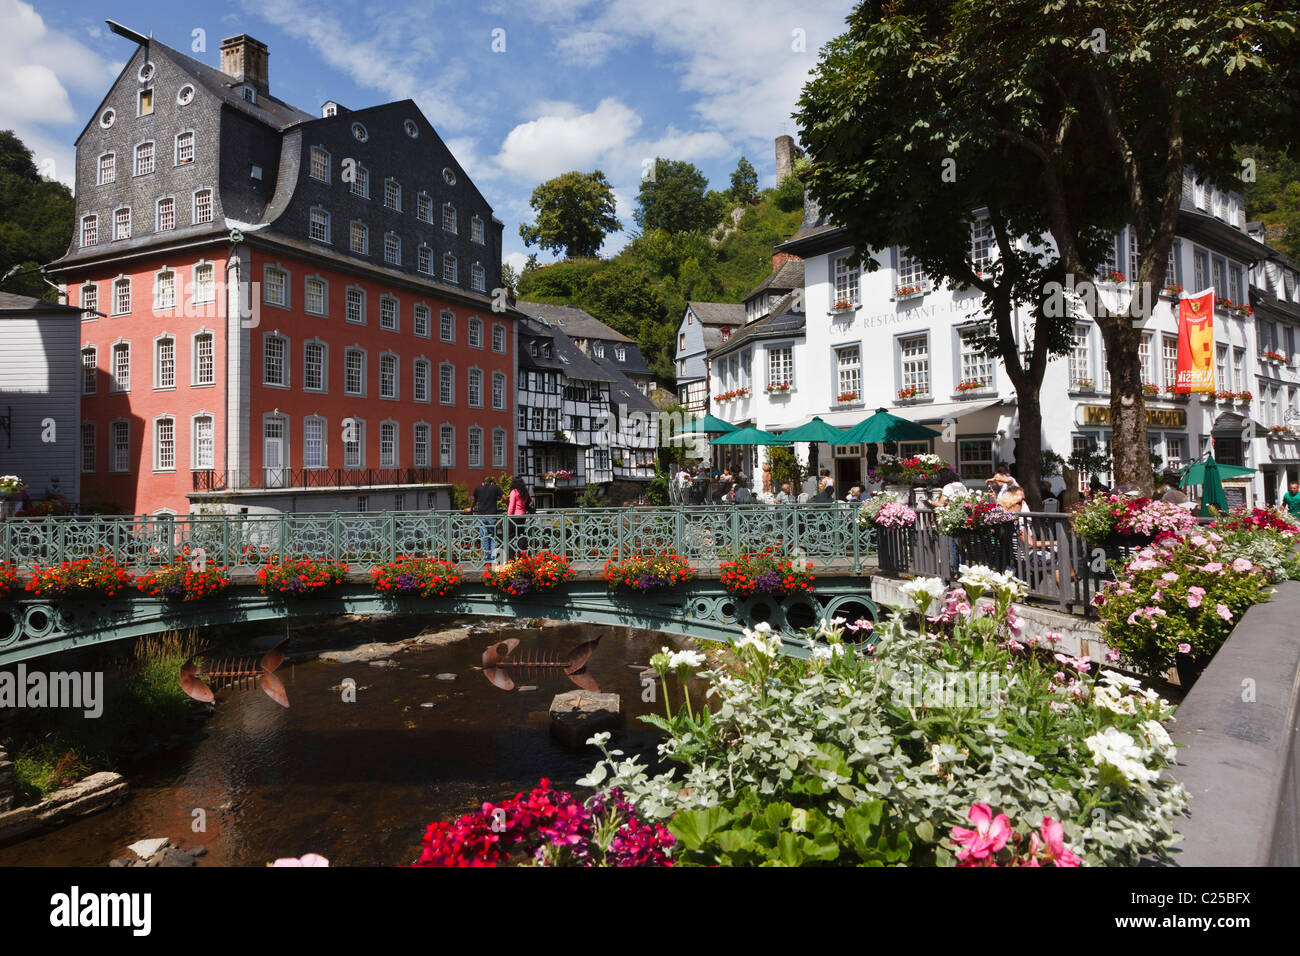 Bridge over the River Rur and the Rotes Haus (Red House) in the historic centre of Monschau, Germany. - Stock Image